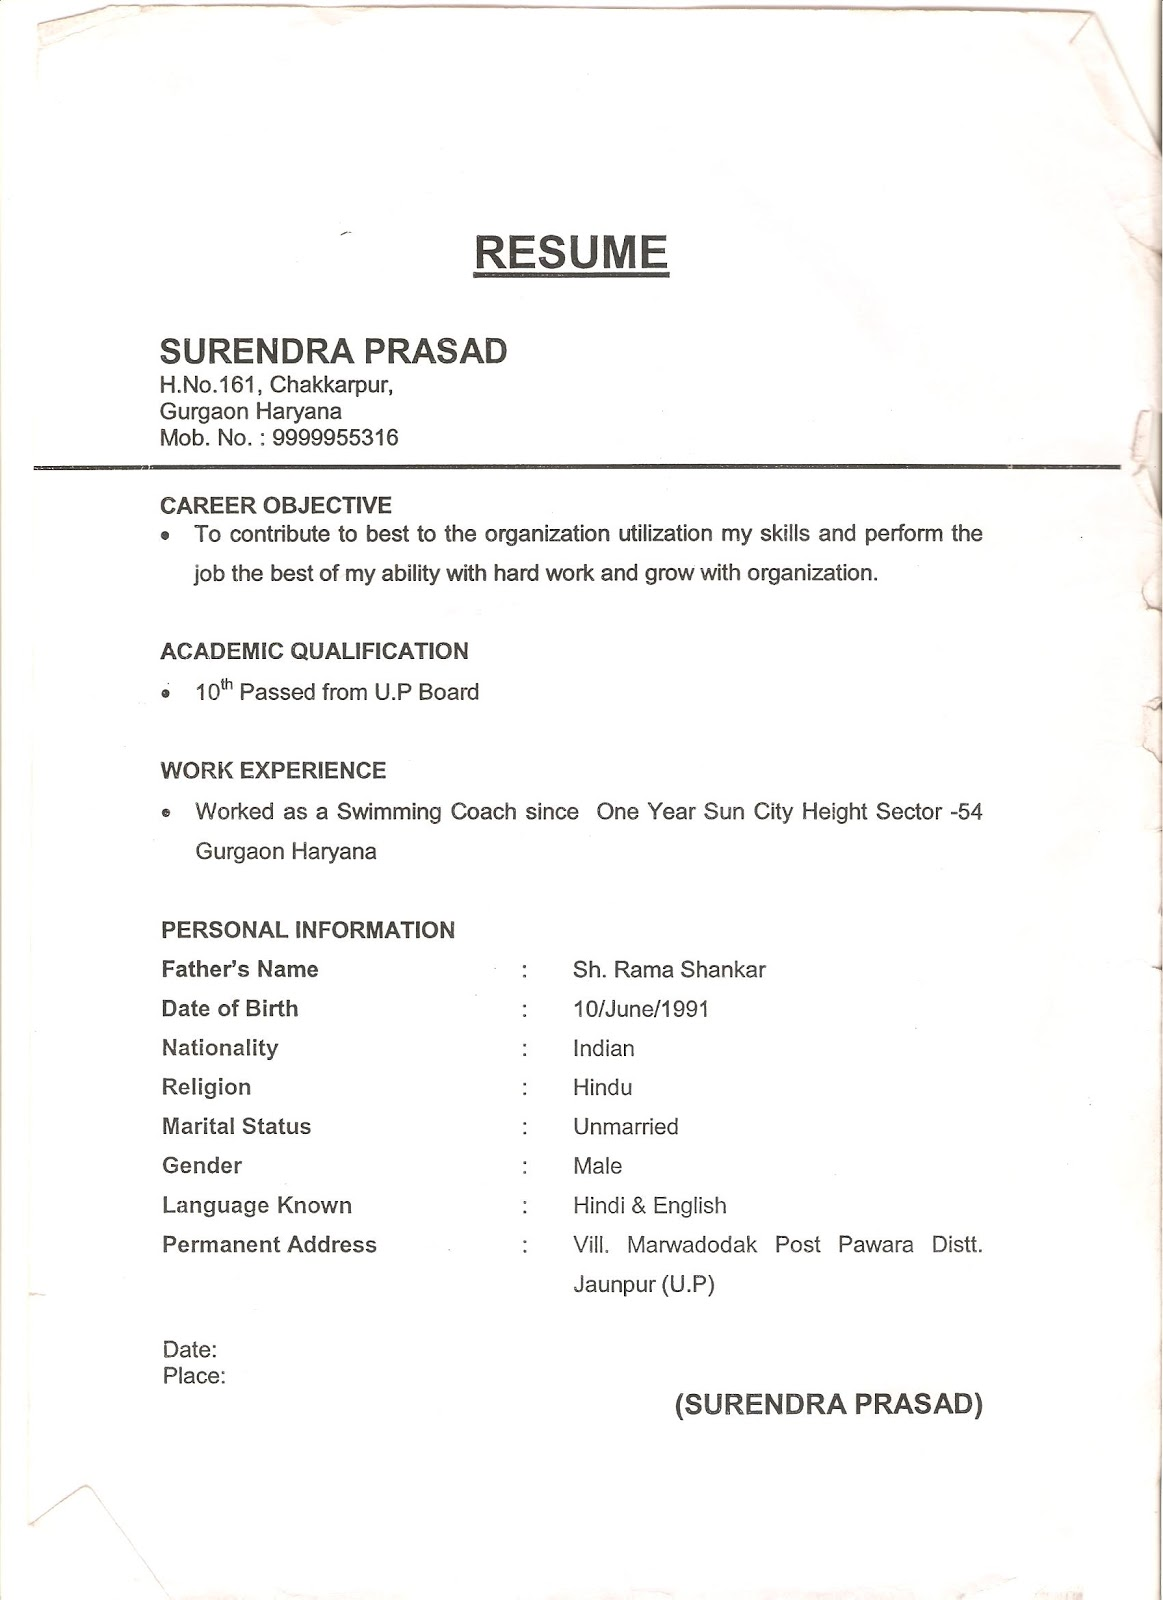 indian political resume format get the curriculum vitae out candidate sample medical Resume Political Candidate Resume Sample India